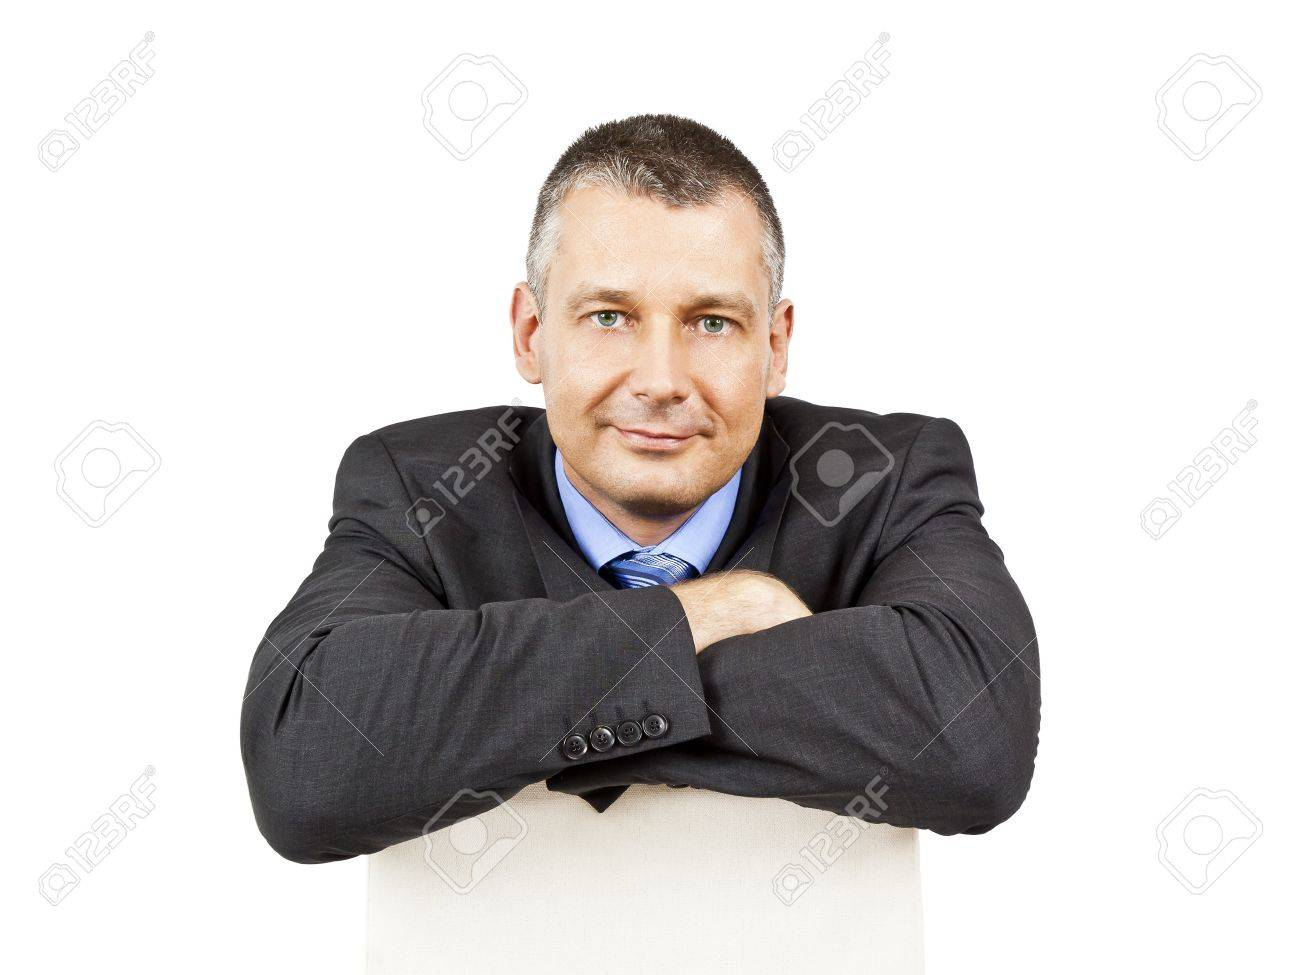 An image of a sitting business man smiling Stock Photo - 9874869